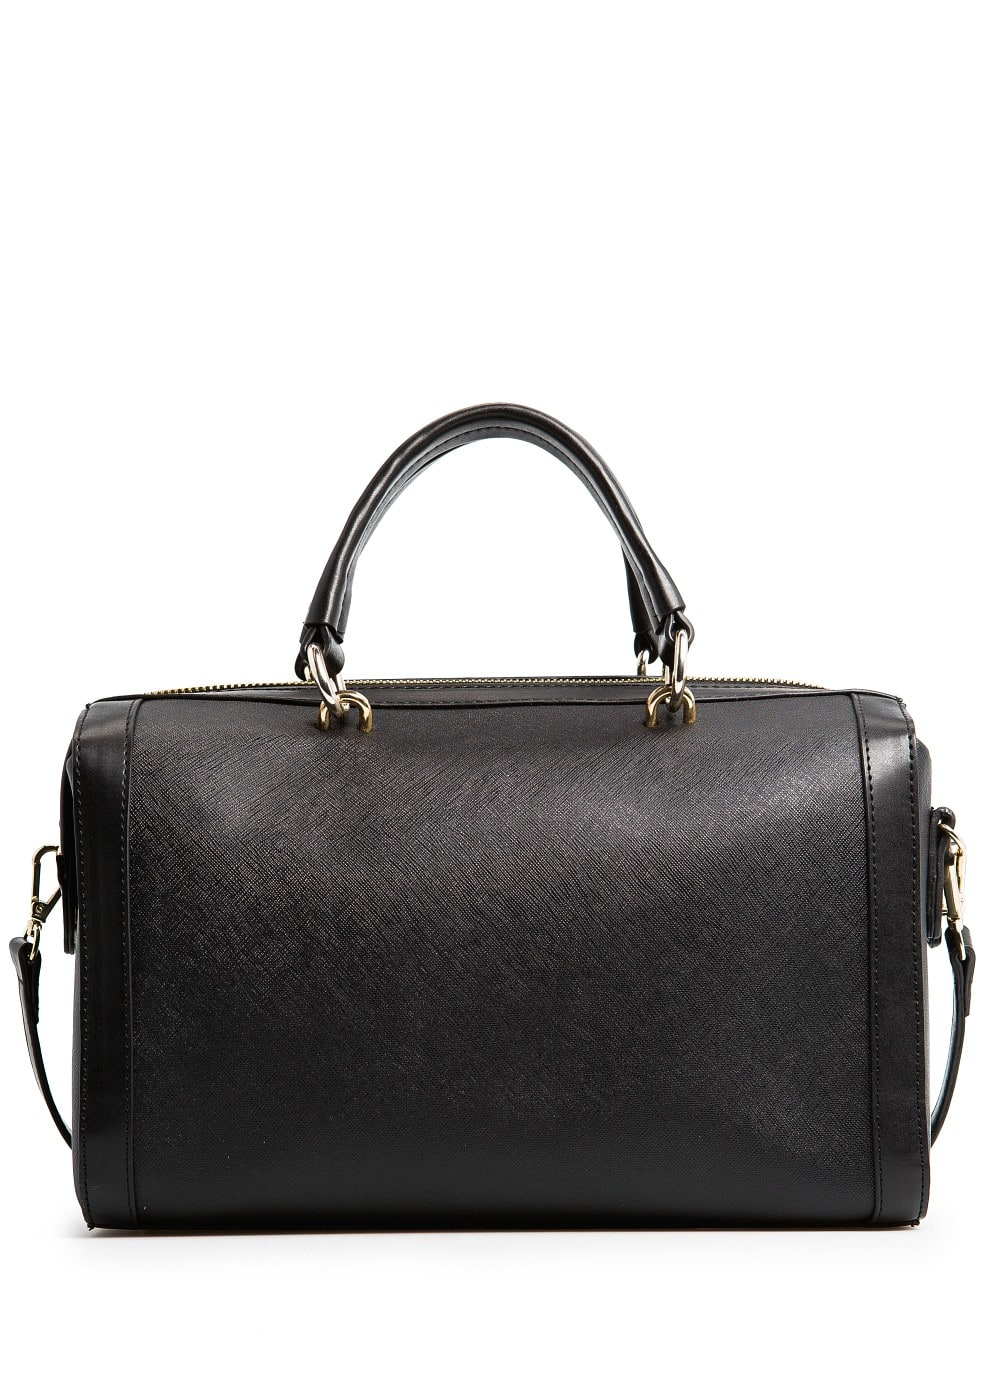 SAFFIANO EFFECT BOWLING BAG